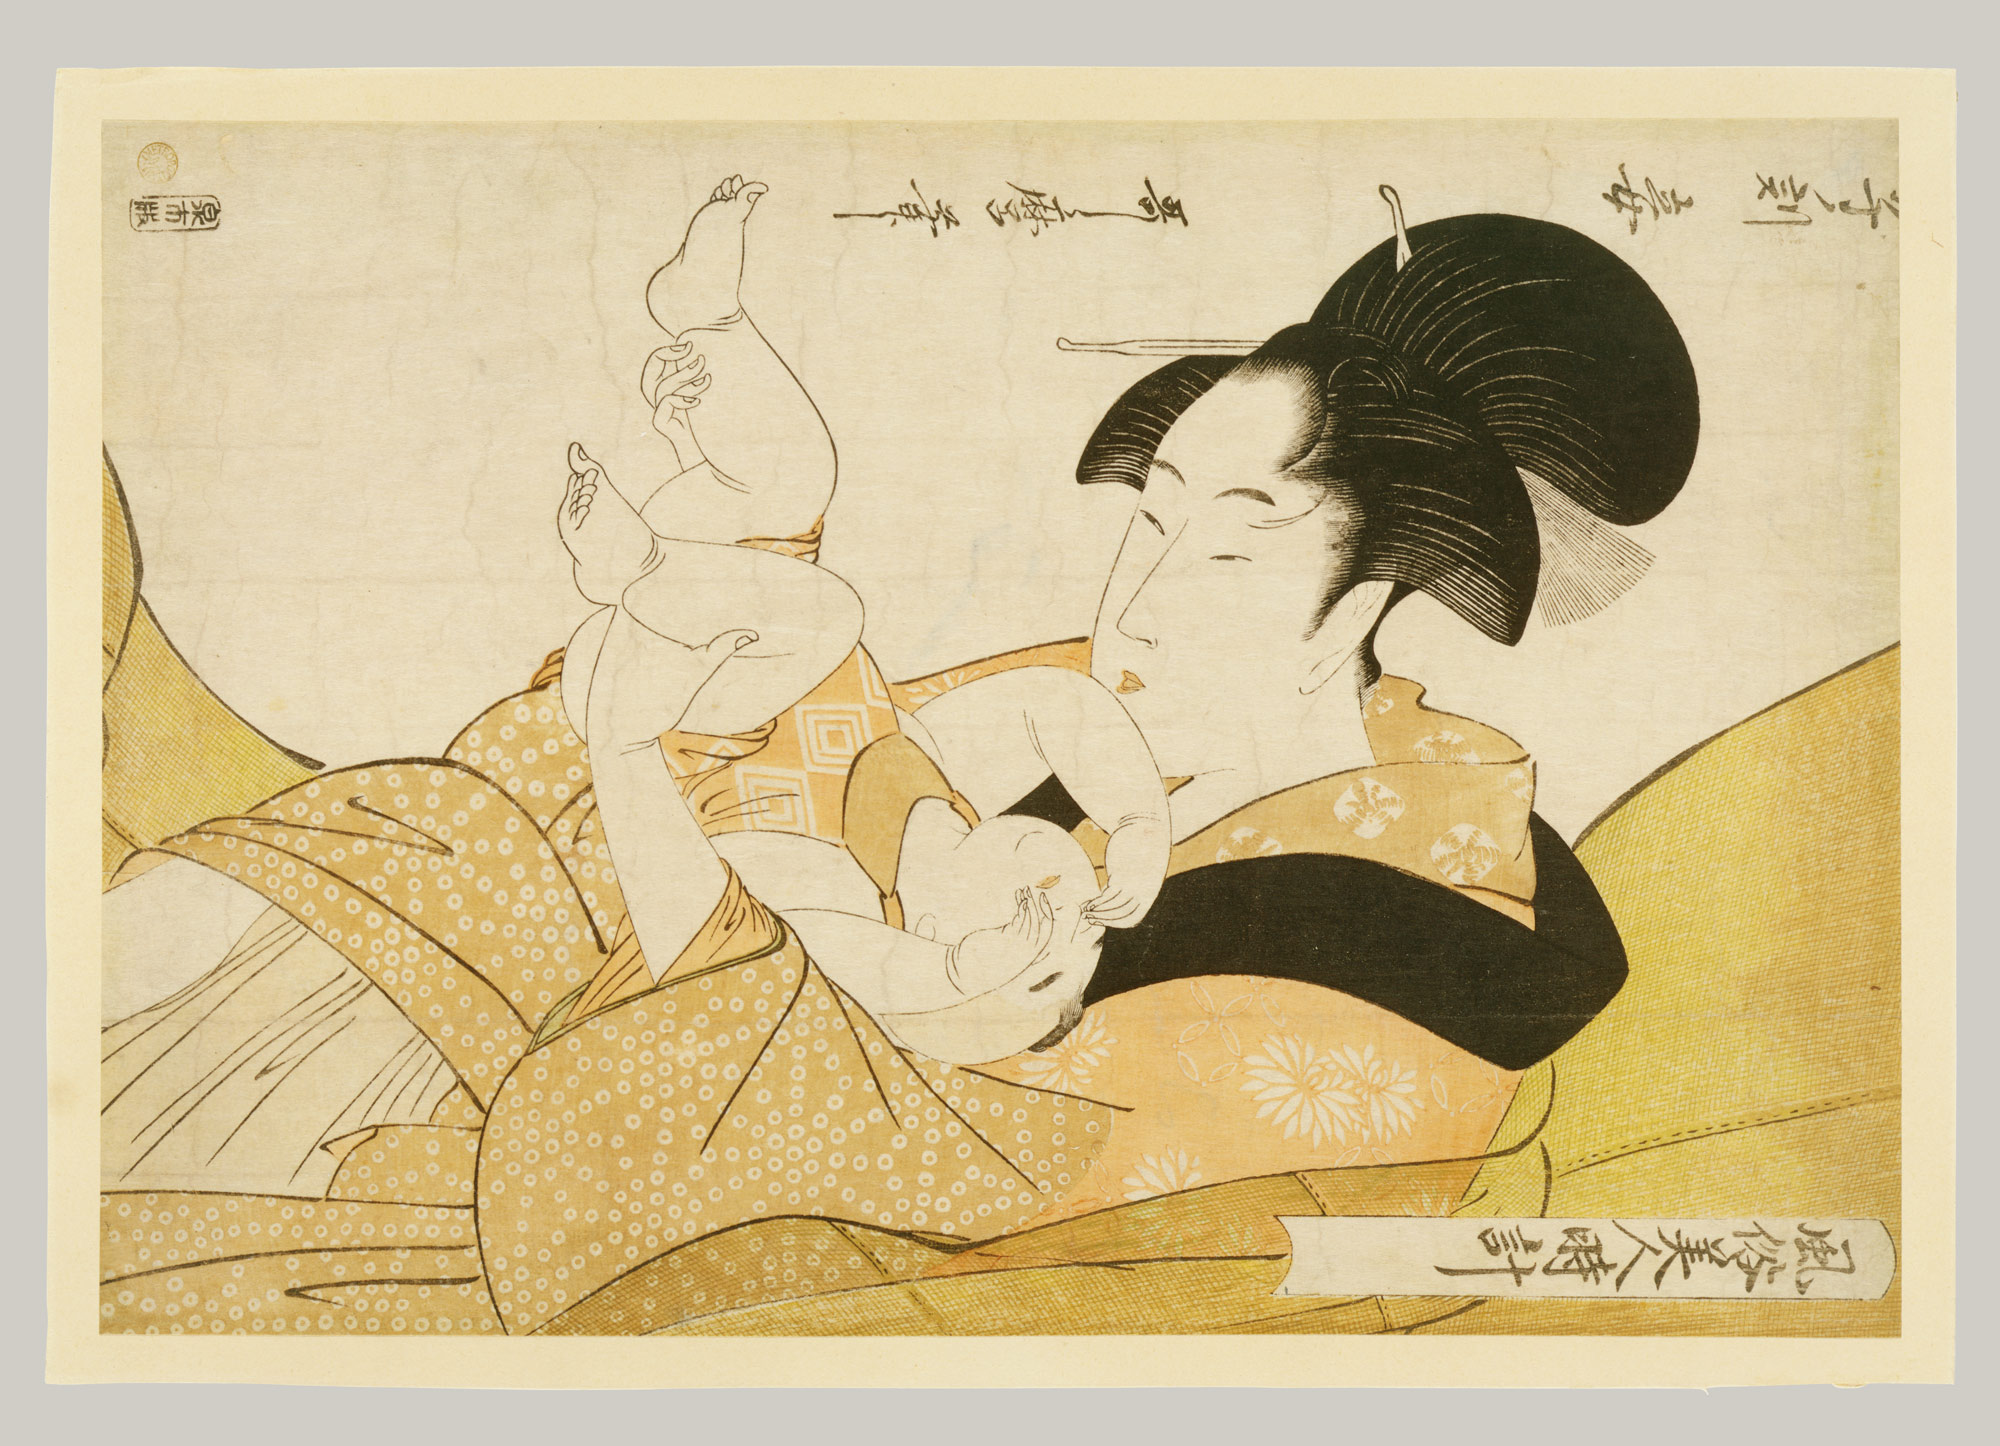 Woodblock Prints in the Ukiyo-e Style | Essay | Heilbrunn Timeline ...